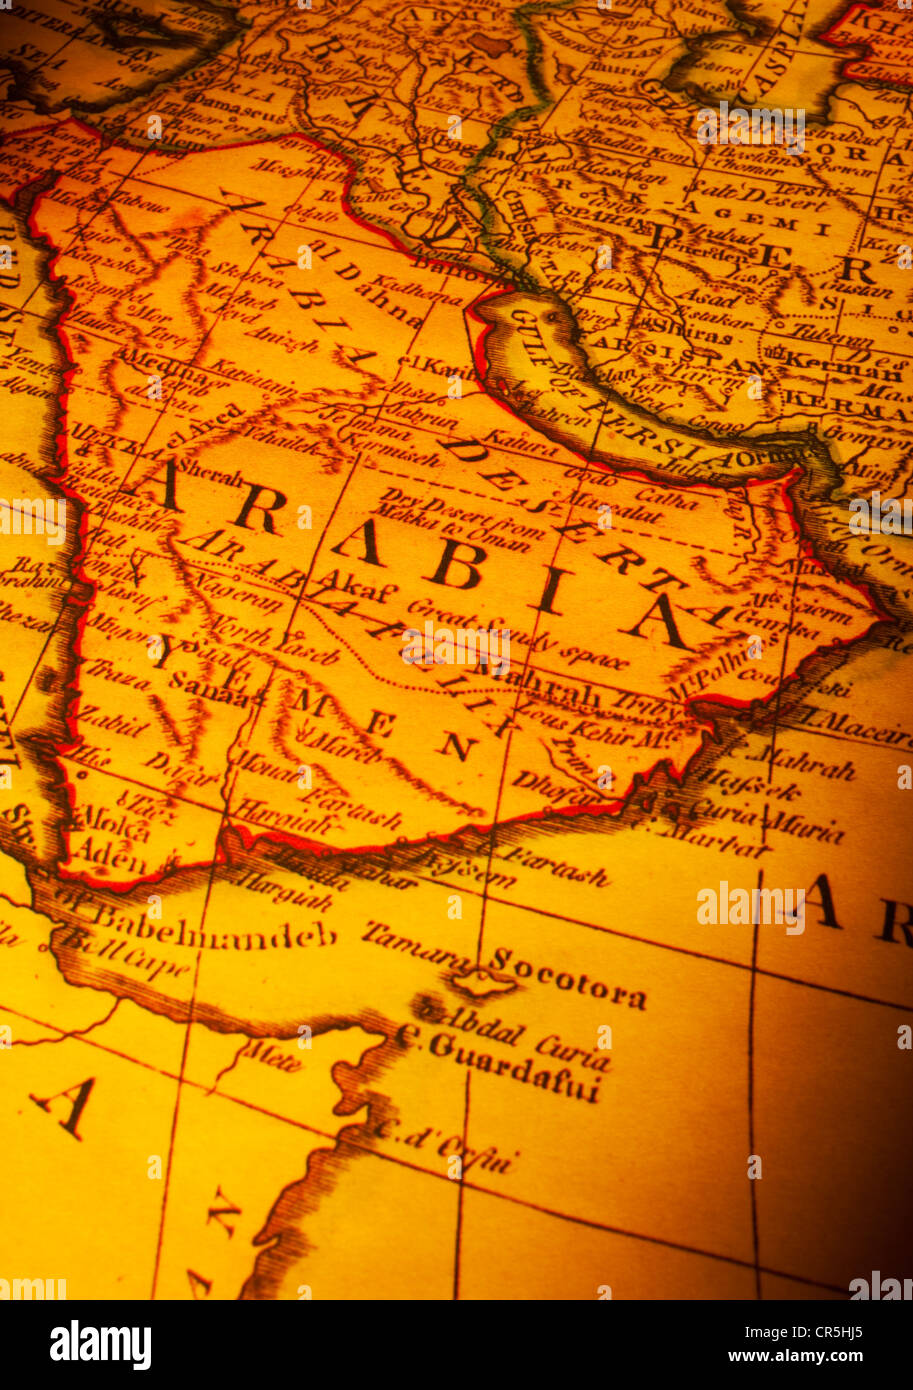 Ancient Map Showing Saudi Arabia Focus Is On The Word Arabia Map – Map of Uae and Saudi Arabia